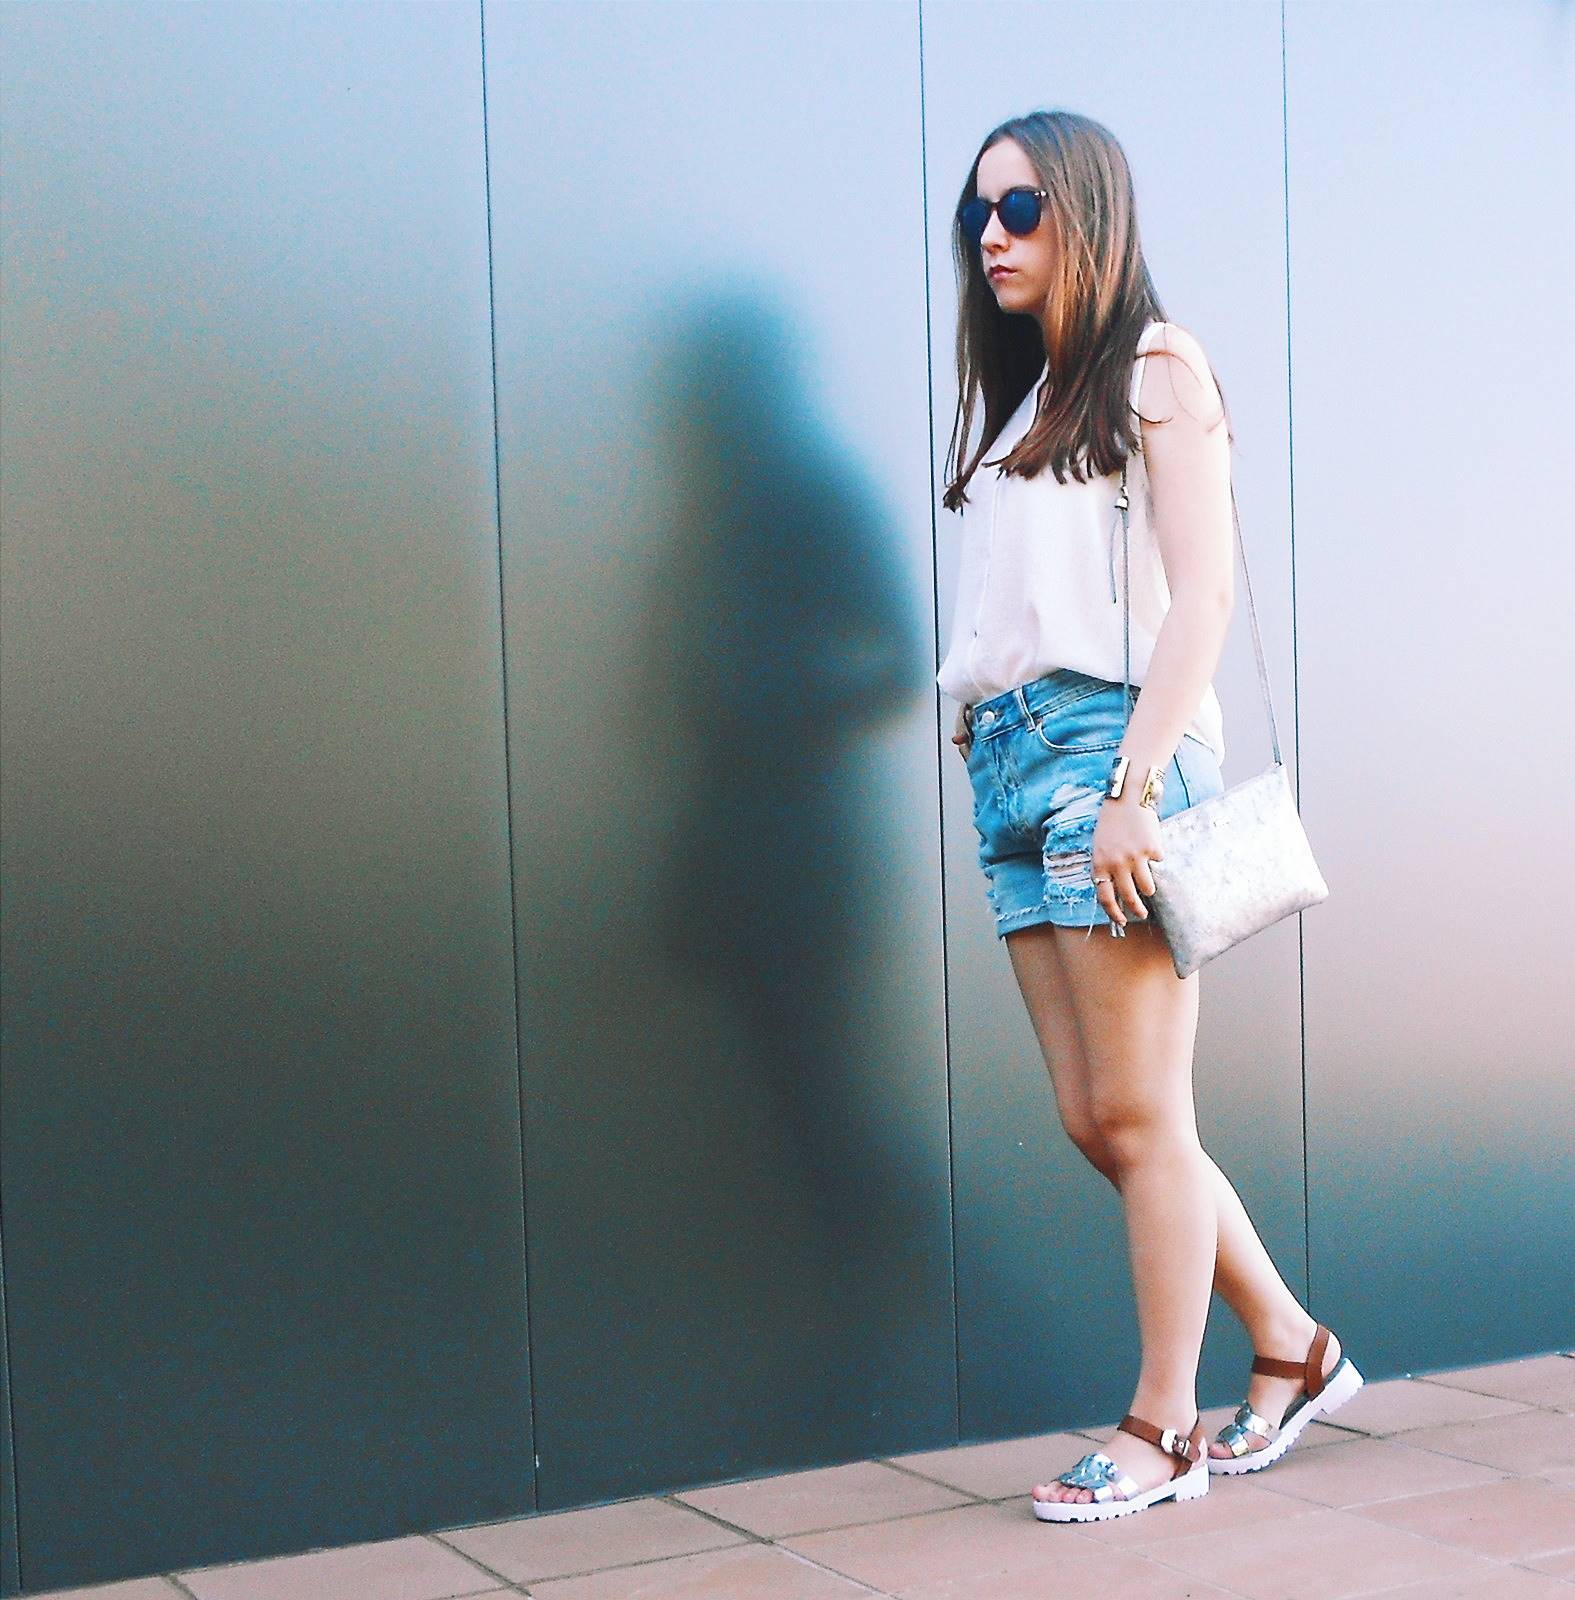 outfit | Simple